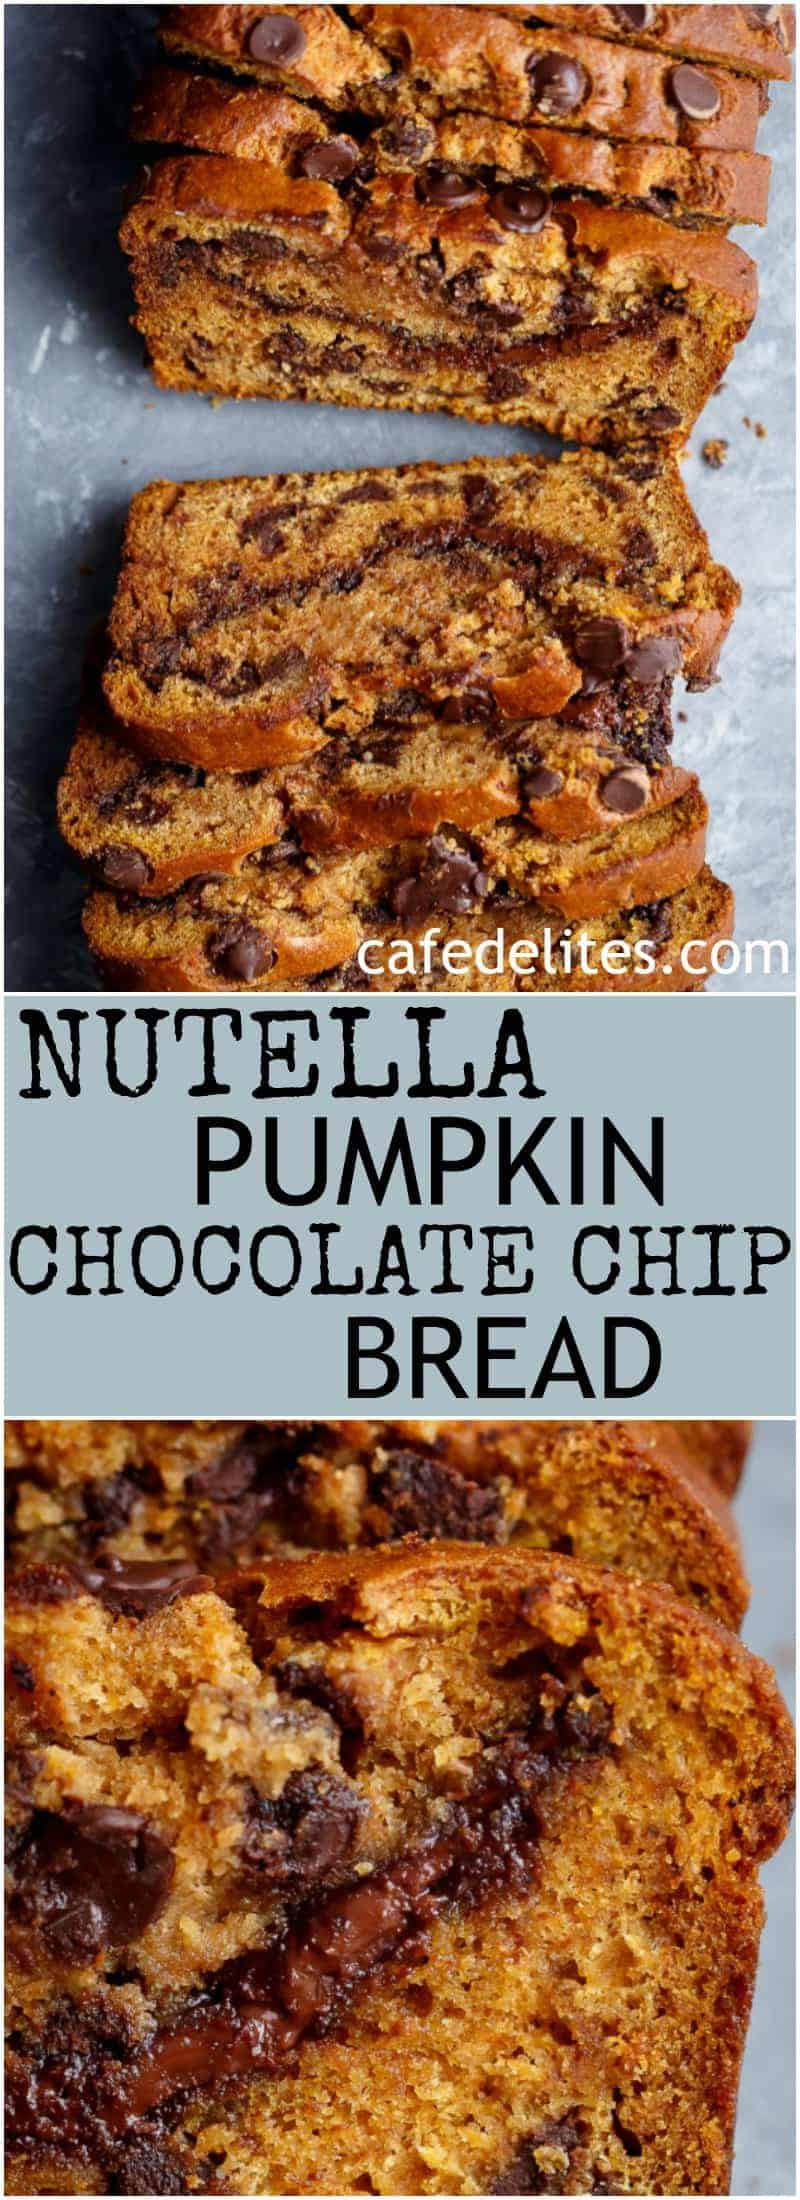 One Bowl Nutella Pumpkin Chocolate Chip Bread is filled with fall flavours and melt in your mouth chocolate chips! With just a handful of ingredients, this is THE bread of the season the whole family will love!   https://cafedelites.com